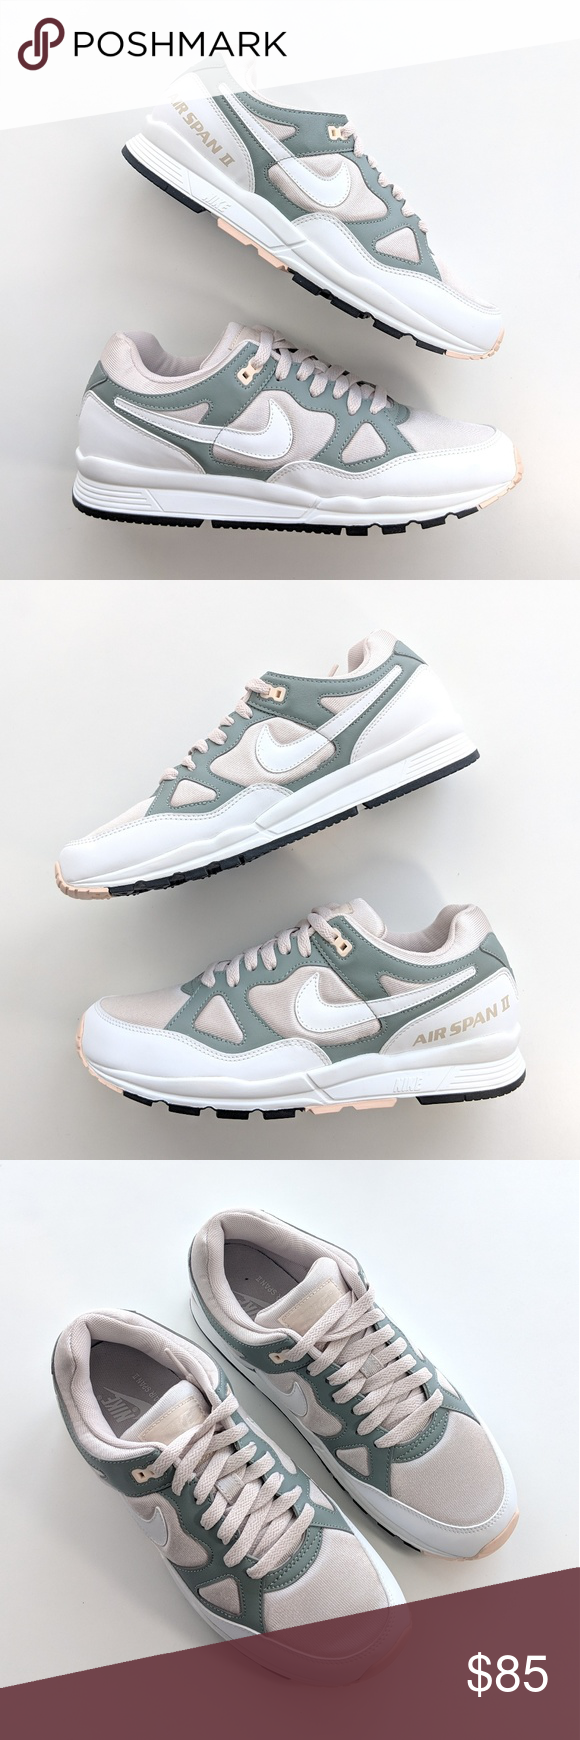 timeless design 55f6f 249df NEW Nike Air Span II Desert Sand Summit White Nike Air Span II Desert Sand.  Visit. April 2019